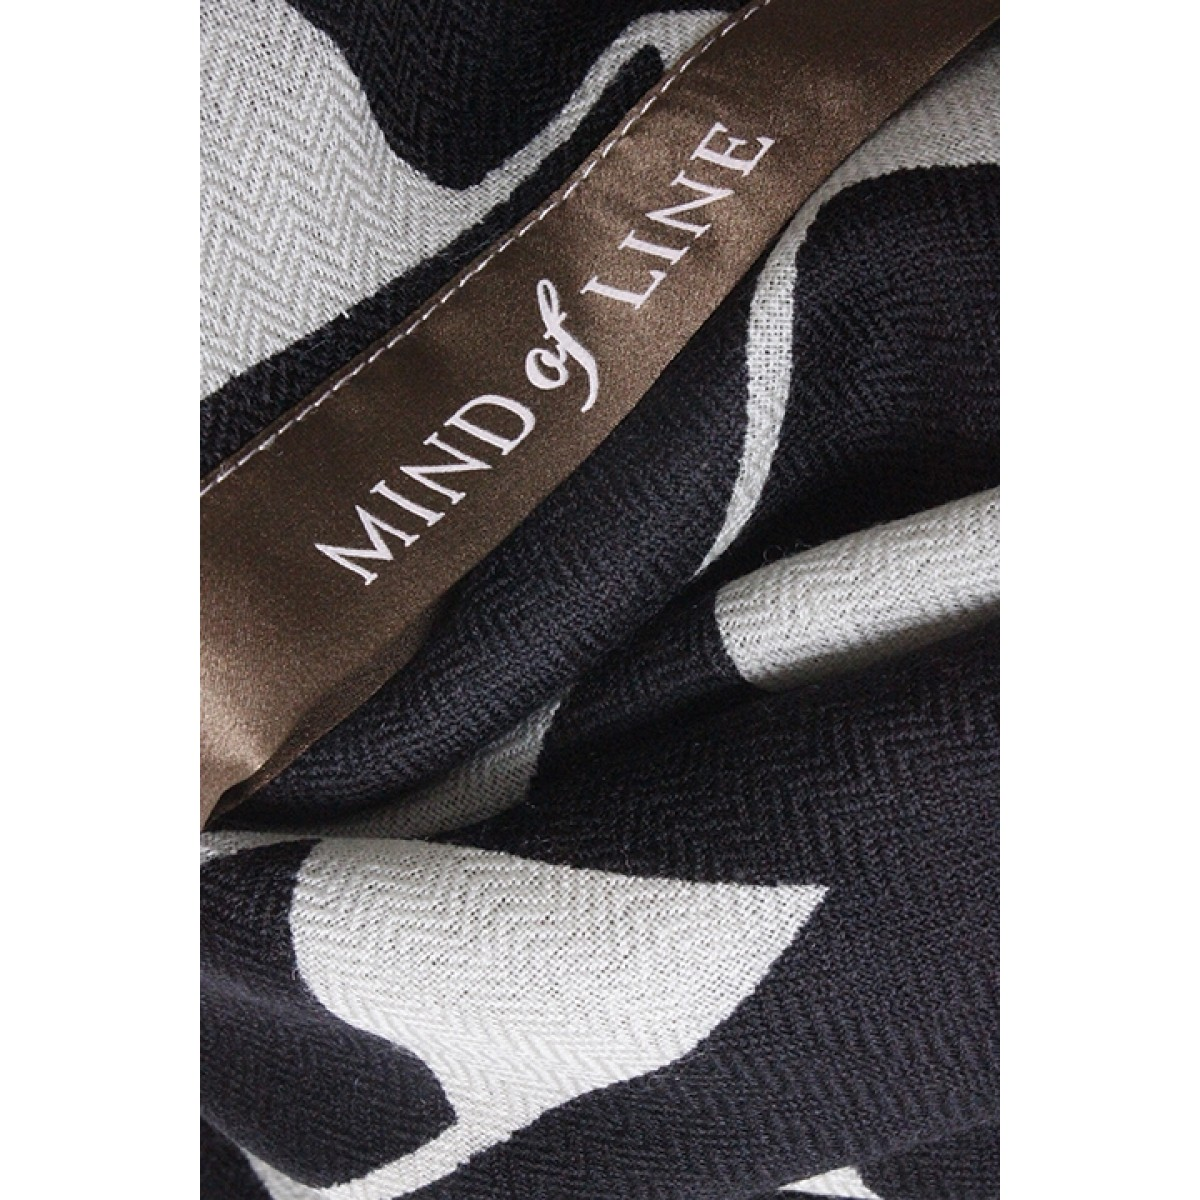 Mind of Line 3900 Black Cupe-31